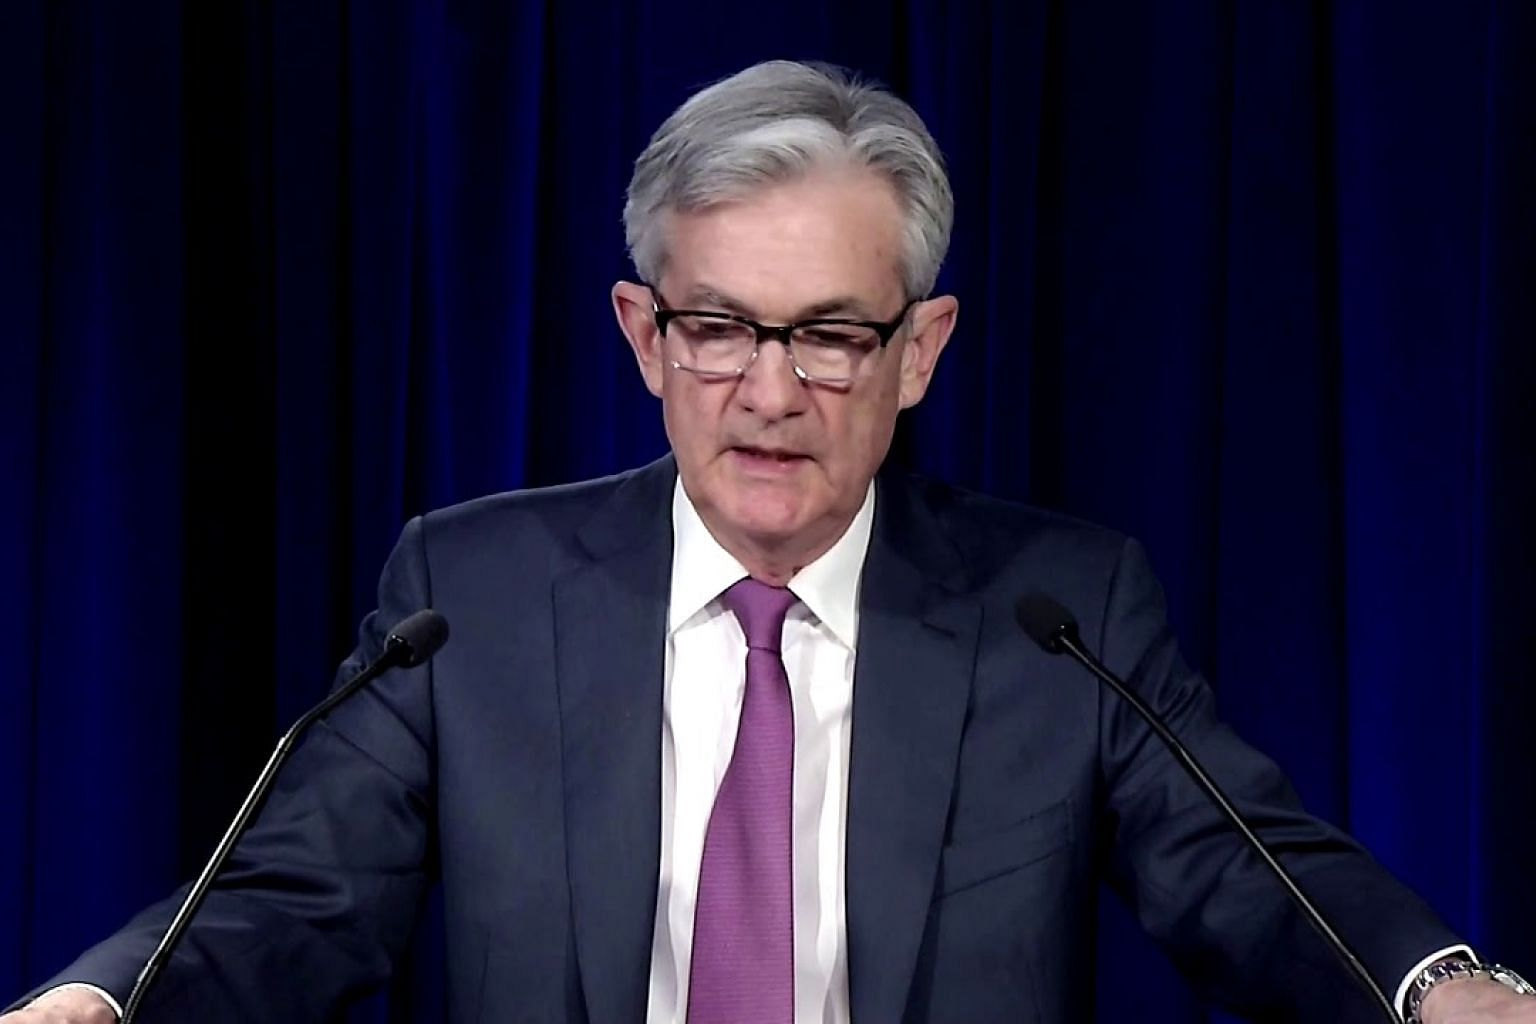 Fed vows to use 'full range' of tools to help economy